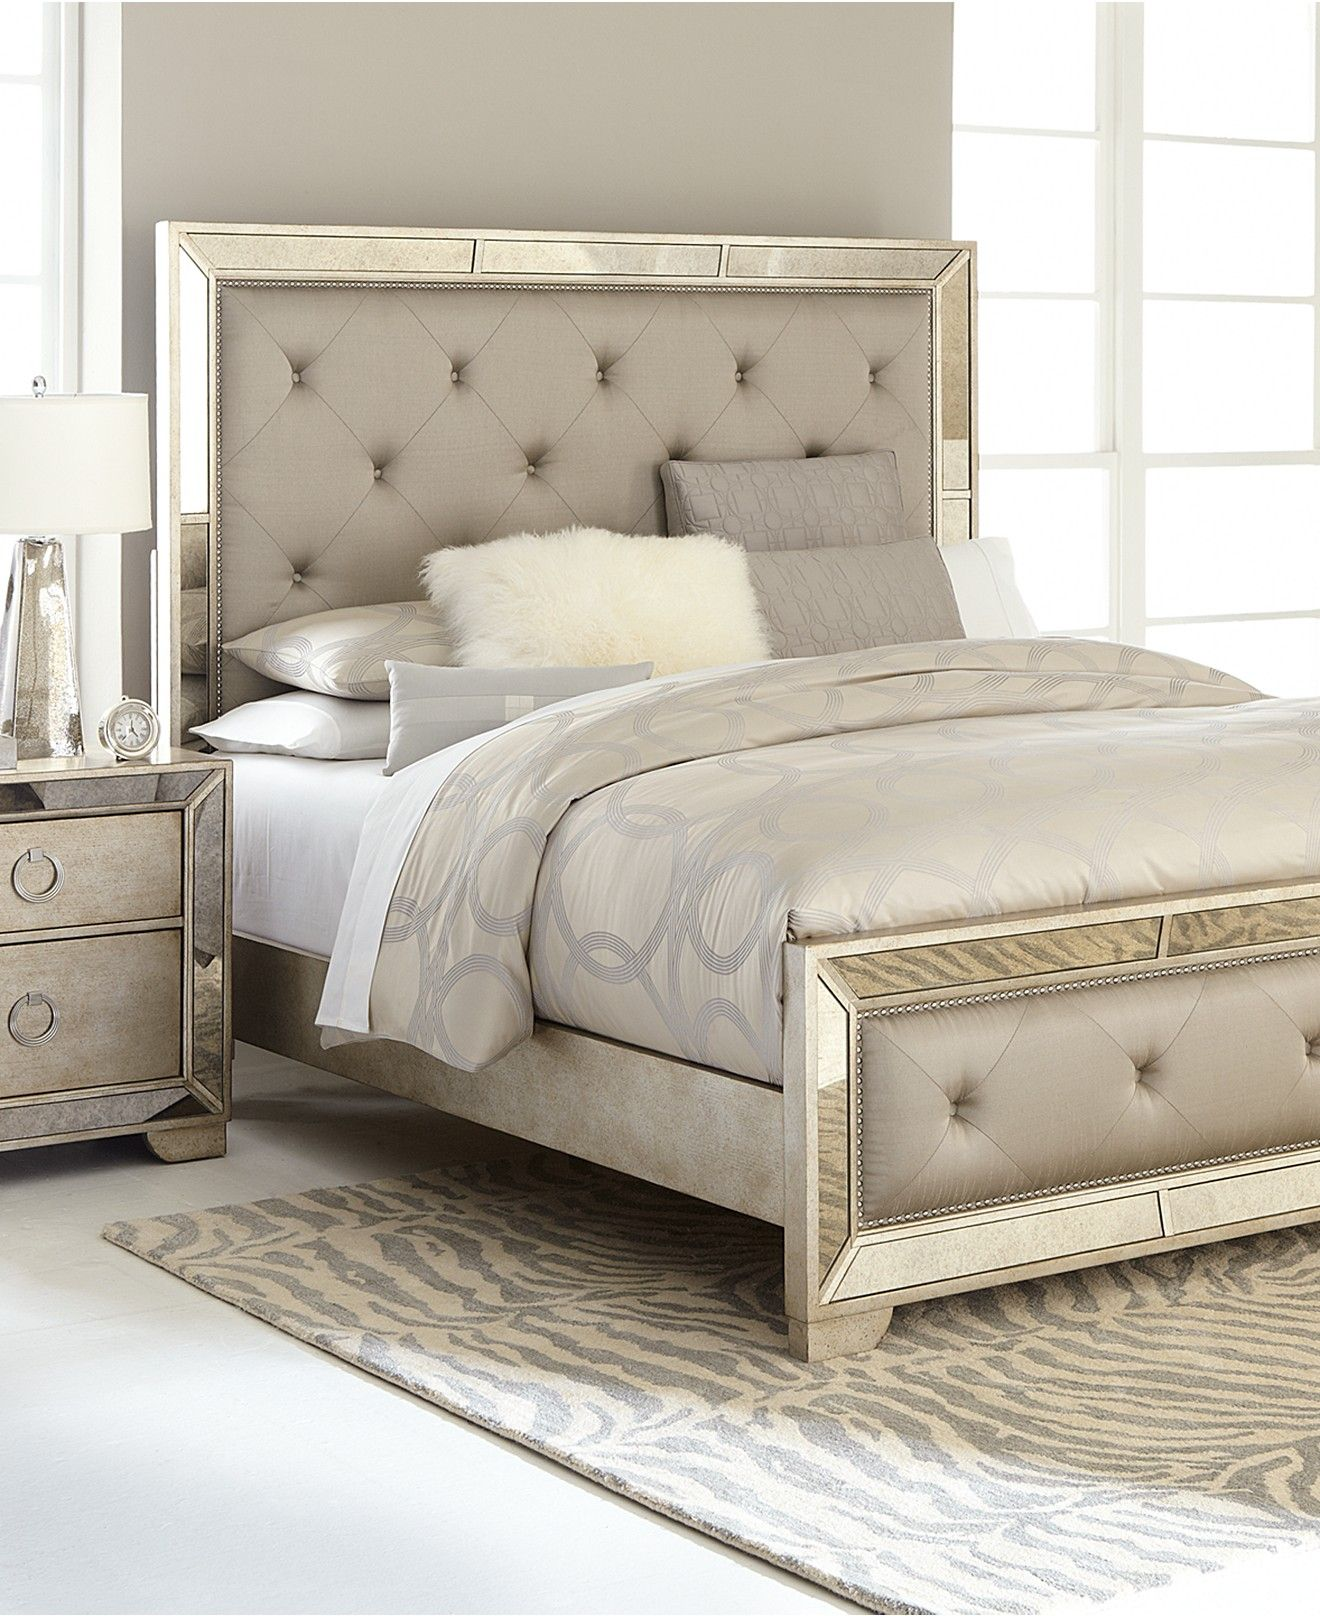 Ailey bedroom furniture collection israelus first apartment